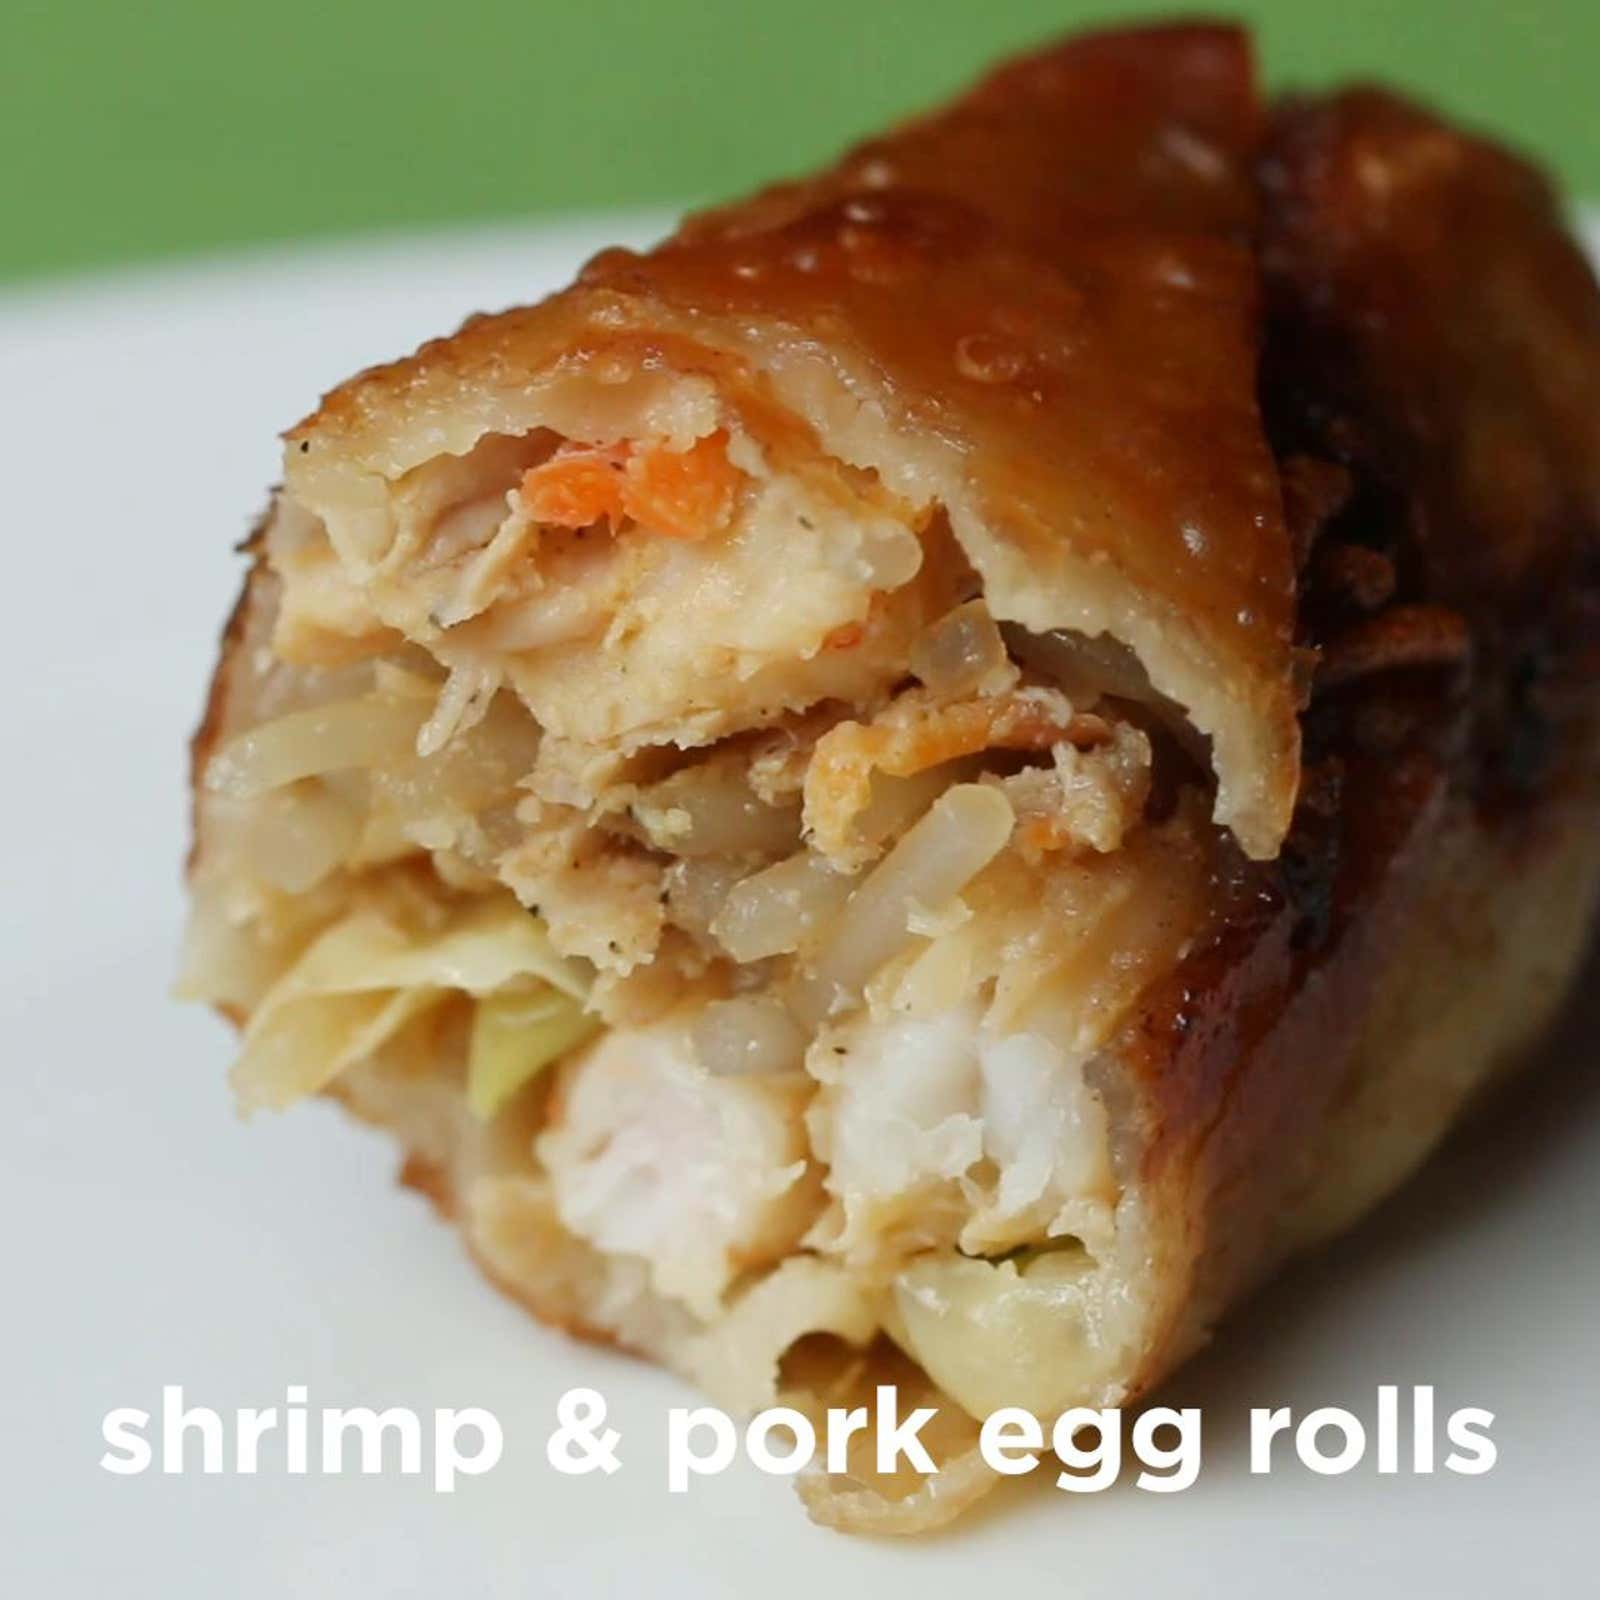 Takeout-Style Shrimp & Pork Egg Rolls